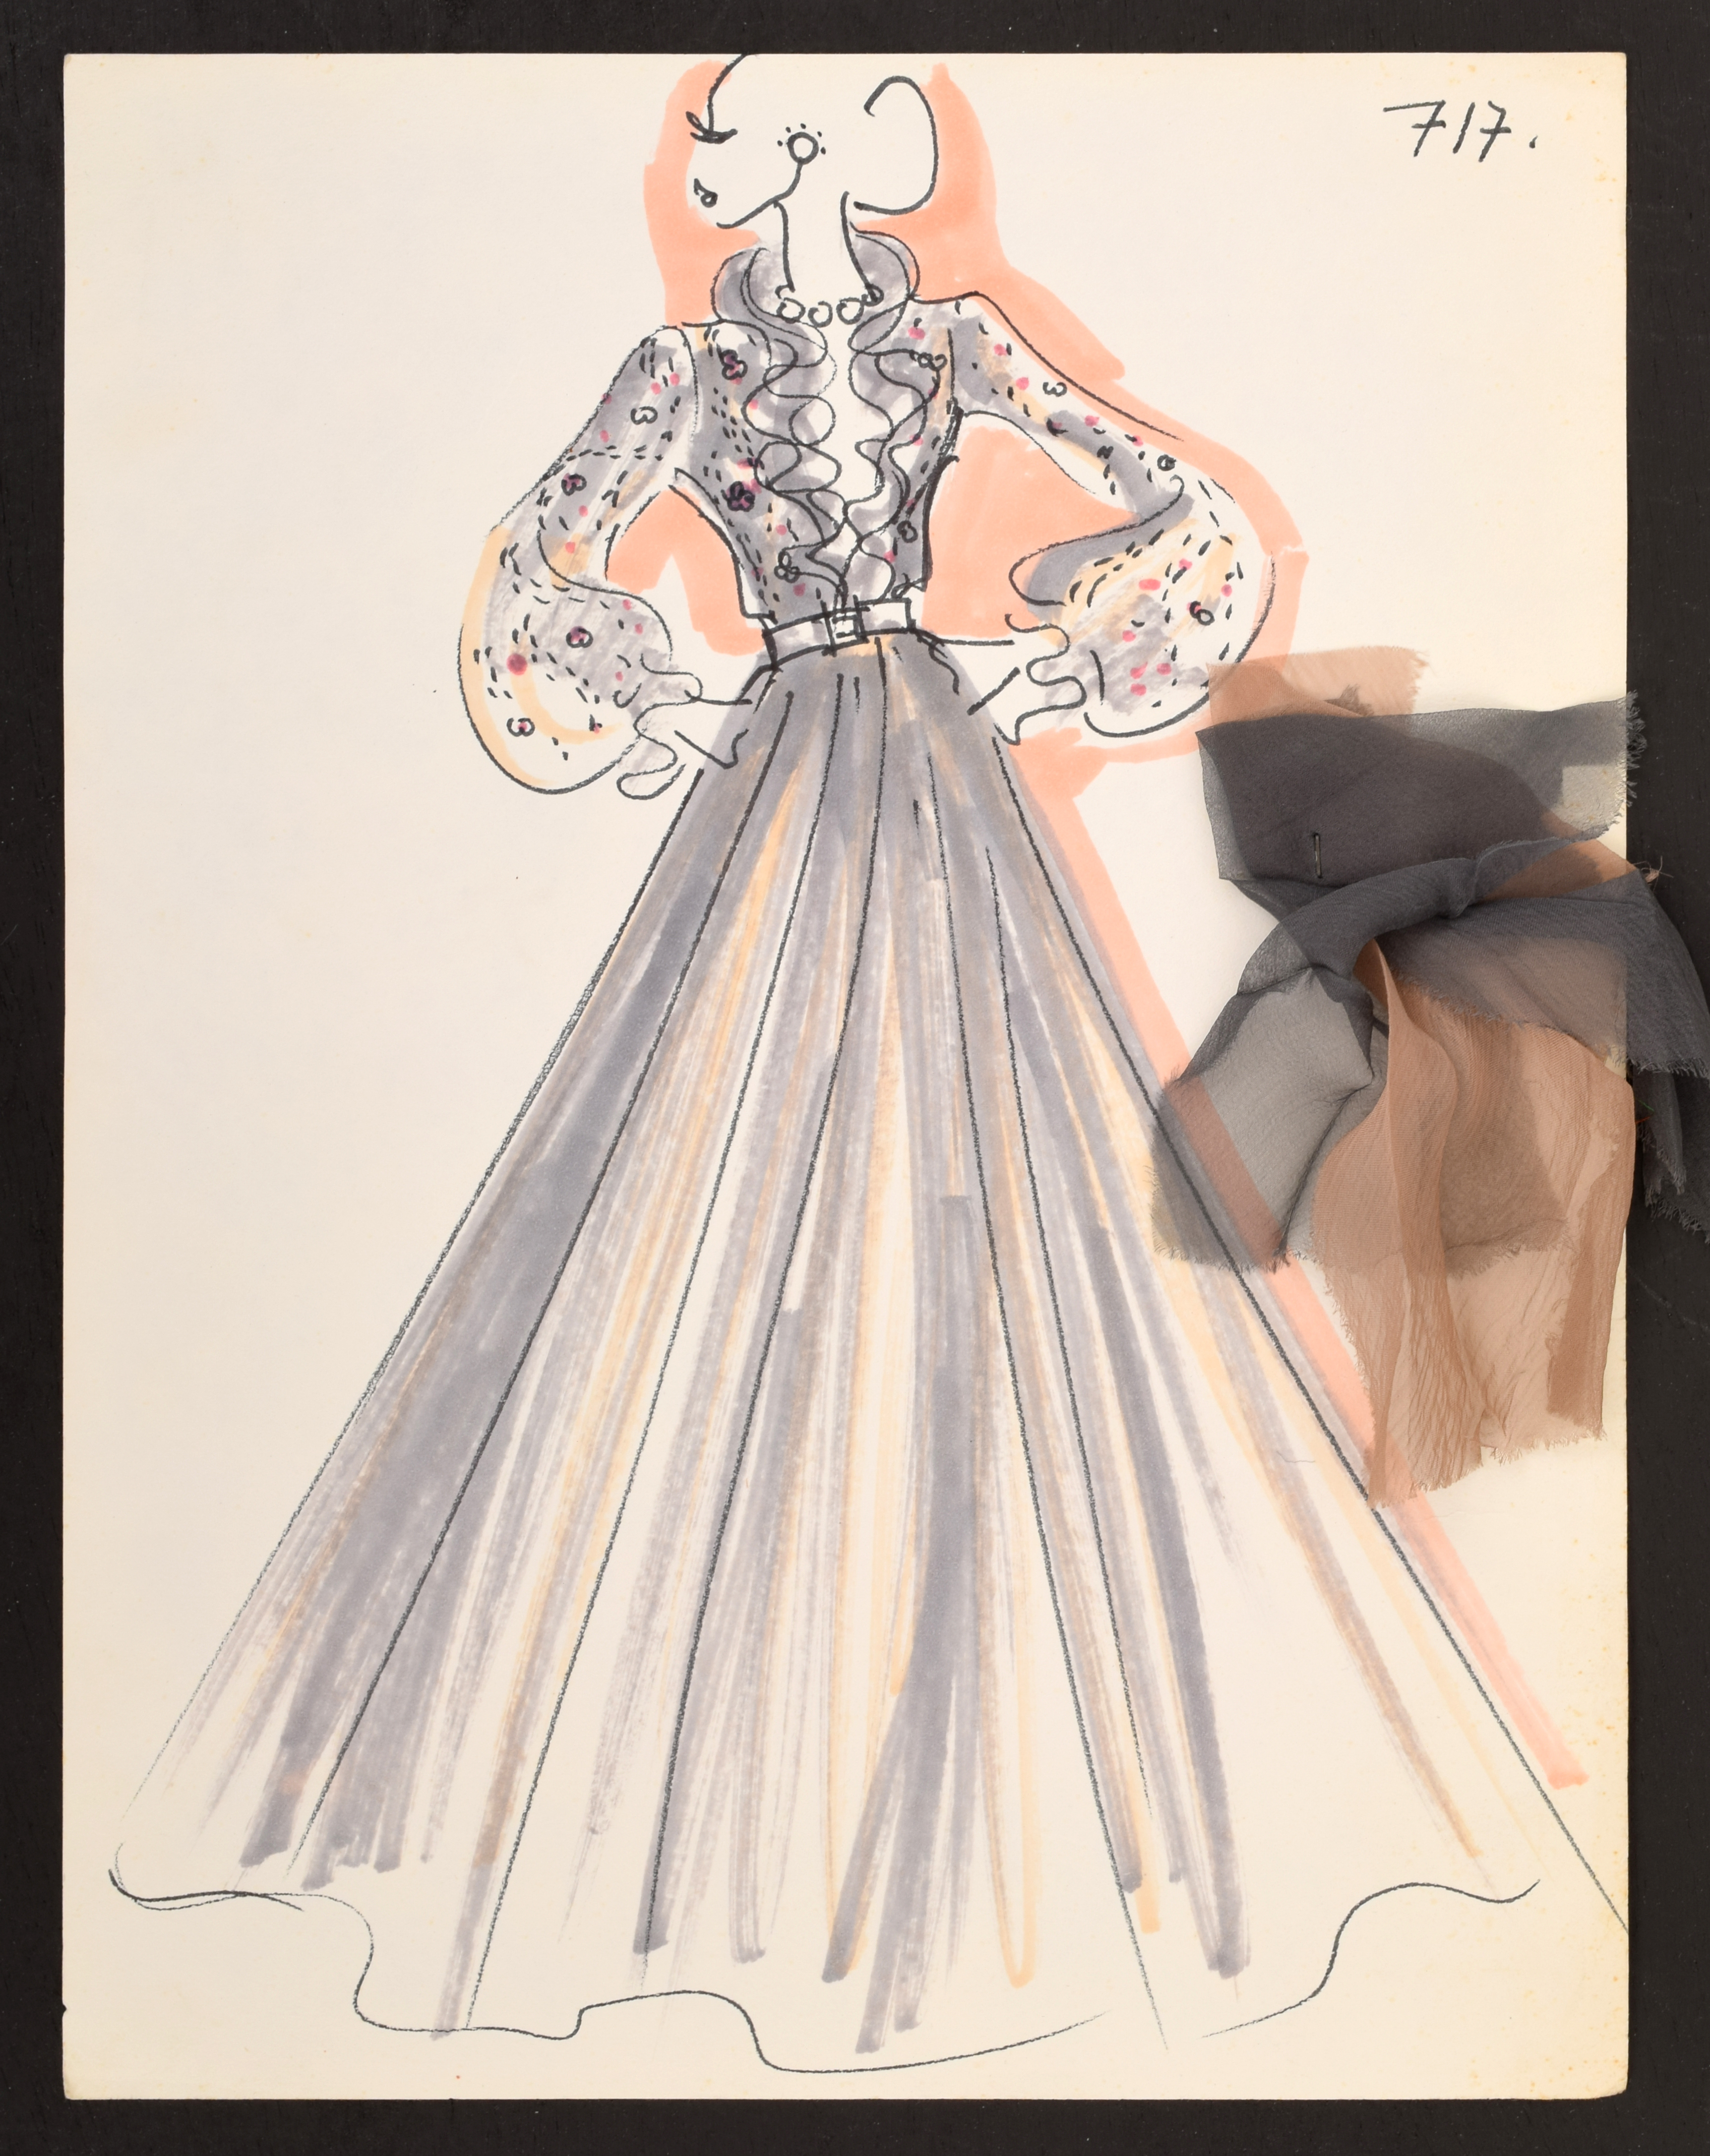 An early Karl Lagerfeld fashion drawing, done in the 1960s for the House of Tiziani. It shows a woman in an evening gown posing with her hands on her hips and looking to the left. A swatch of brown, semi-opaque fabric is attached to the right side of the drawing.